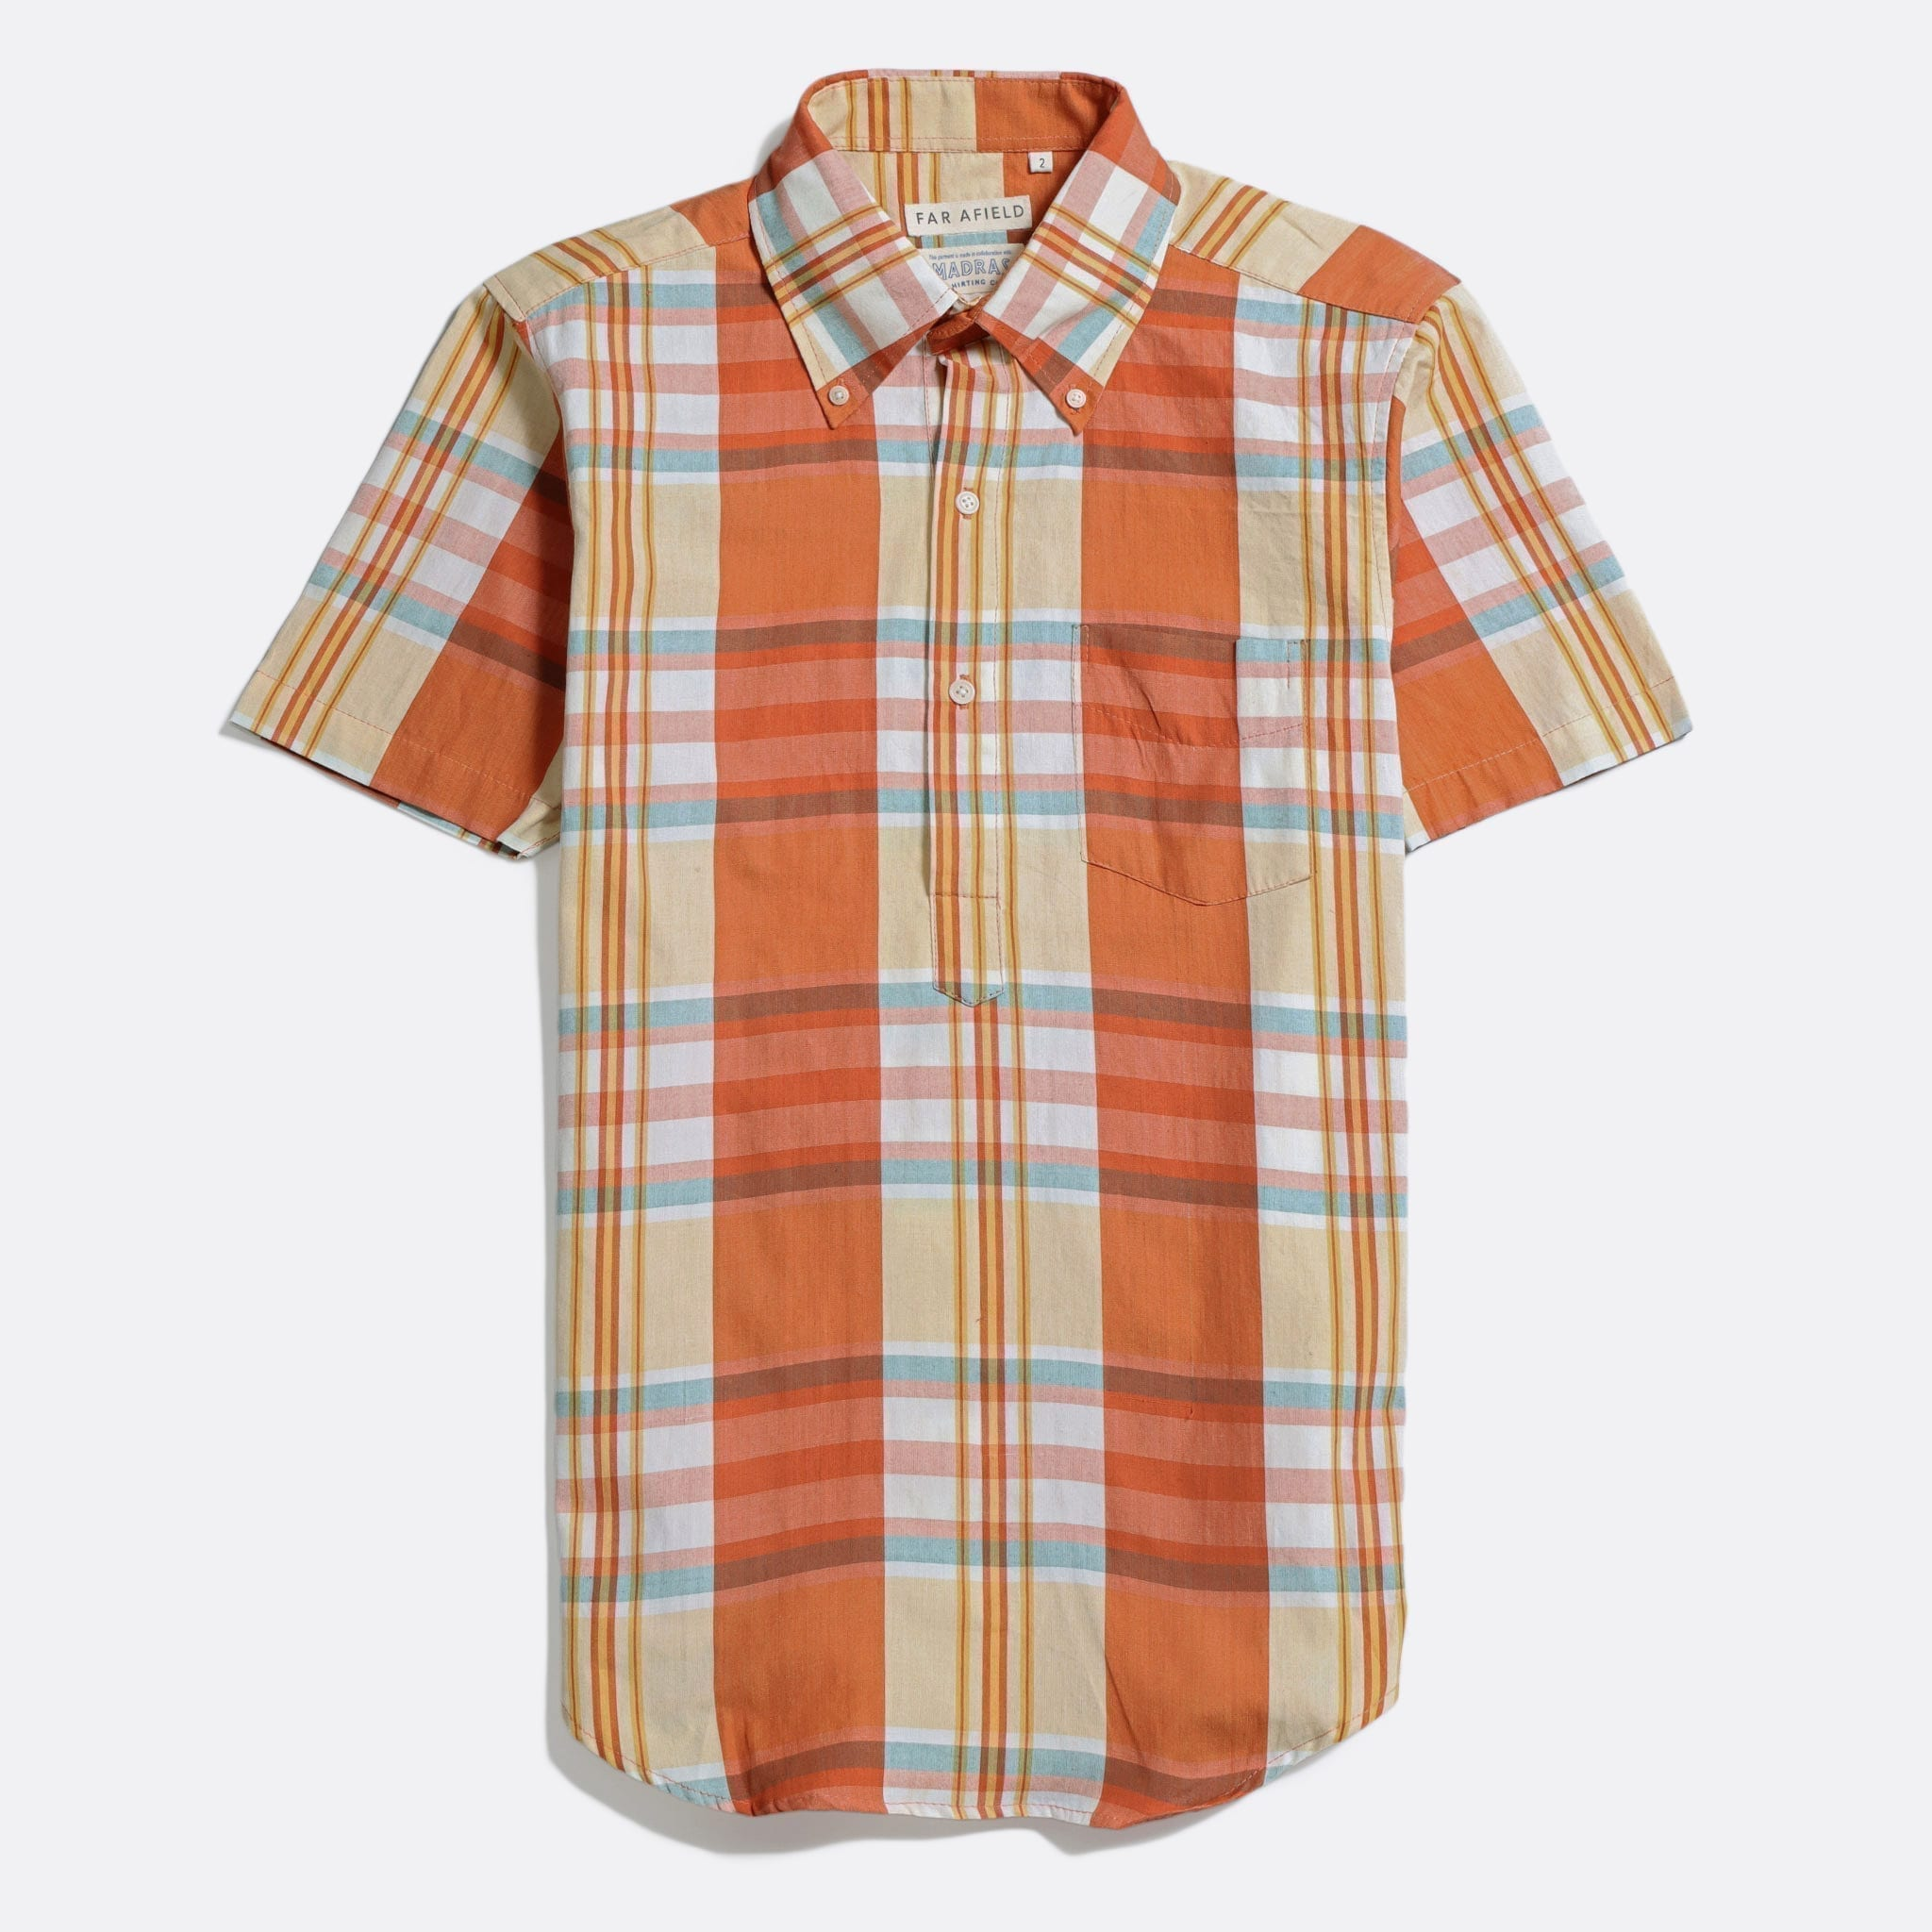 Far Afield x MSCo – Ivy Pop-Over Short Sleeve Shirt a Rincon Check BCI Cotton Fabric Mid Century Inspired